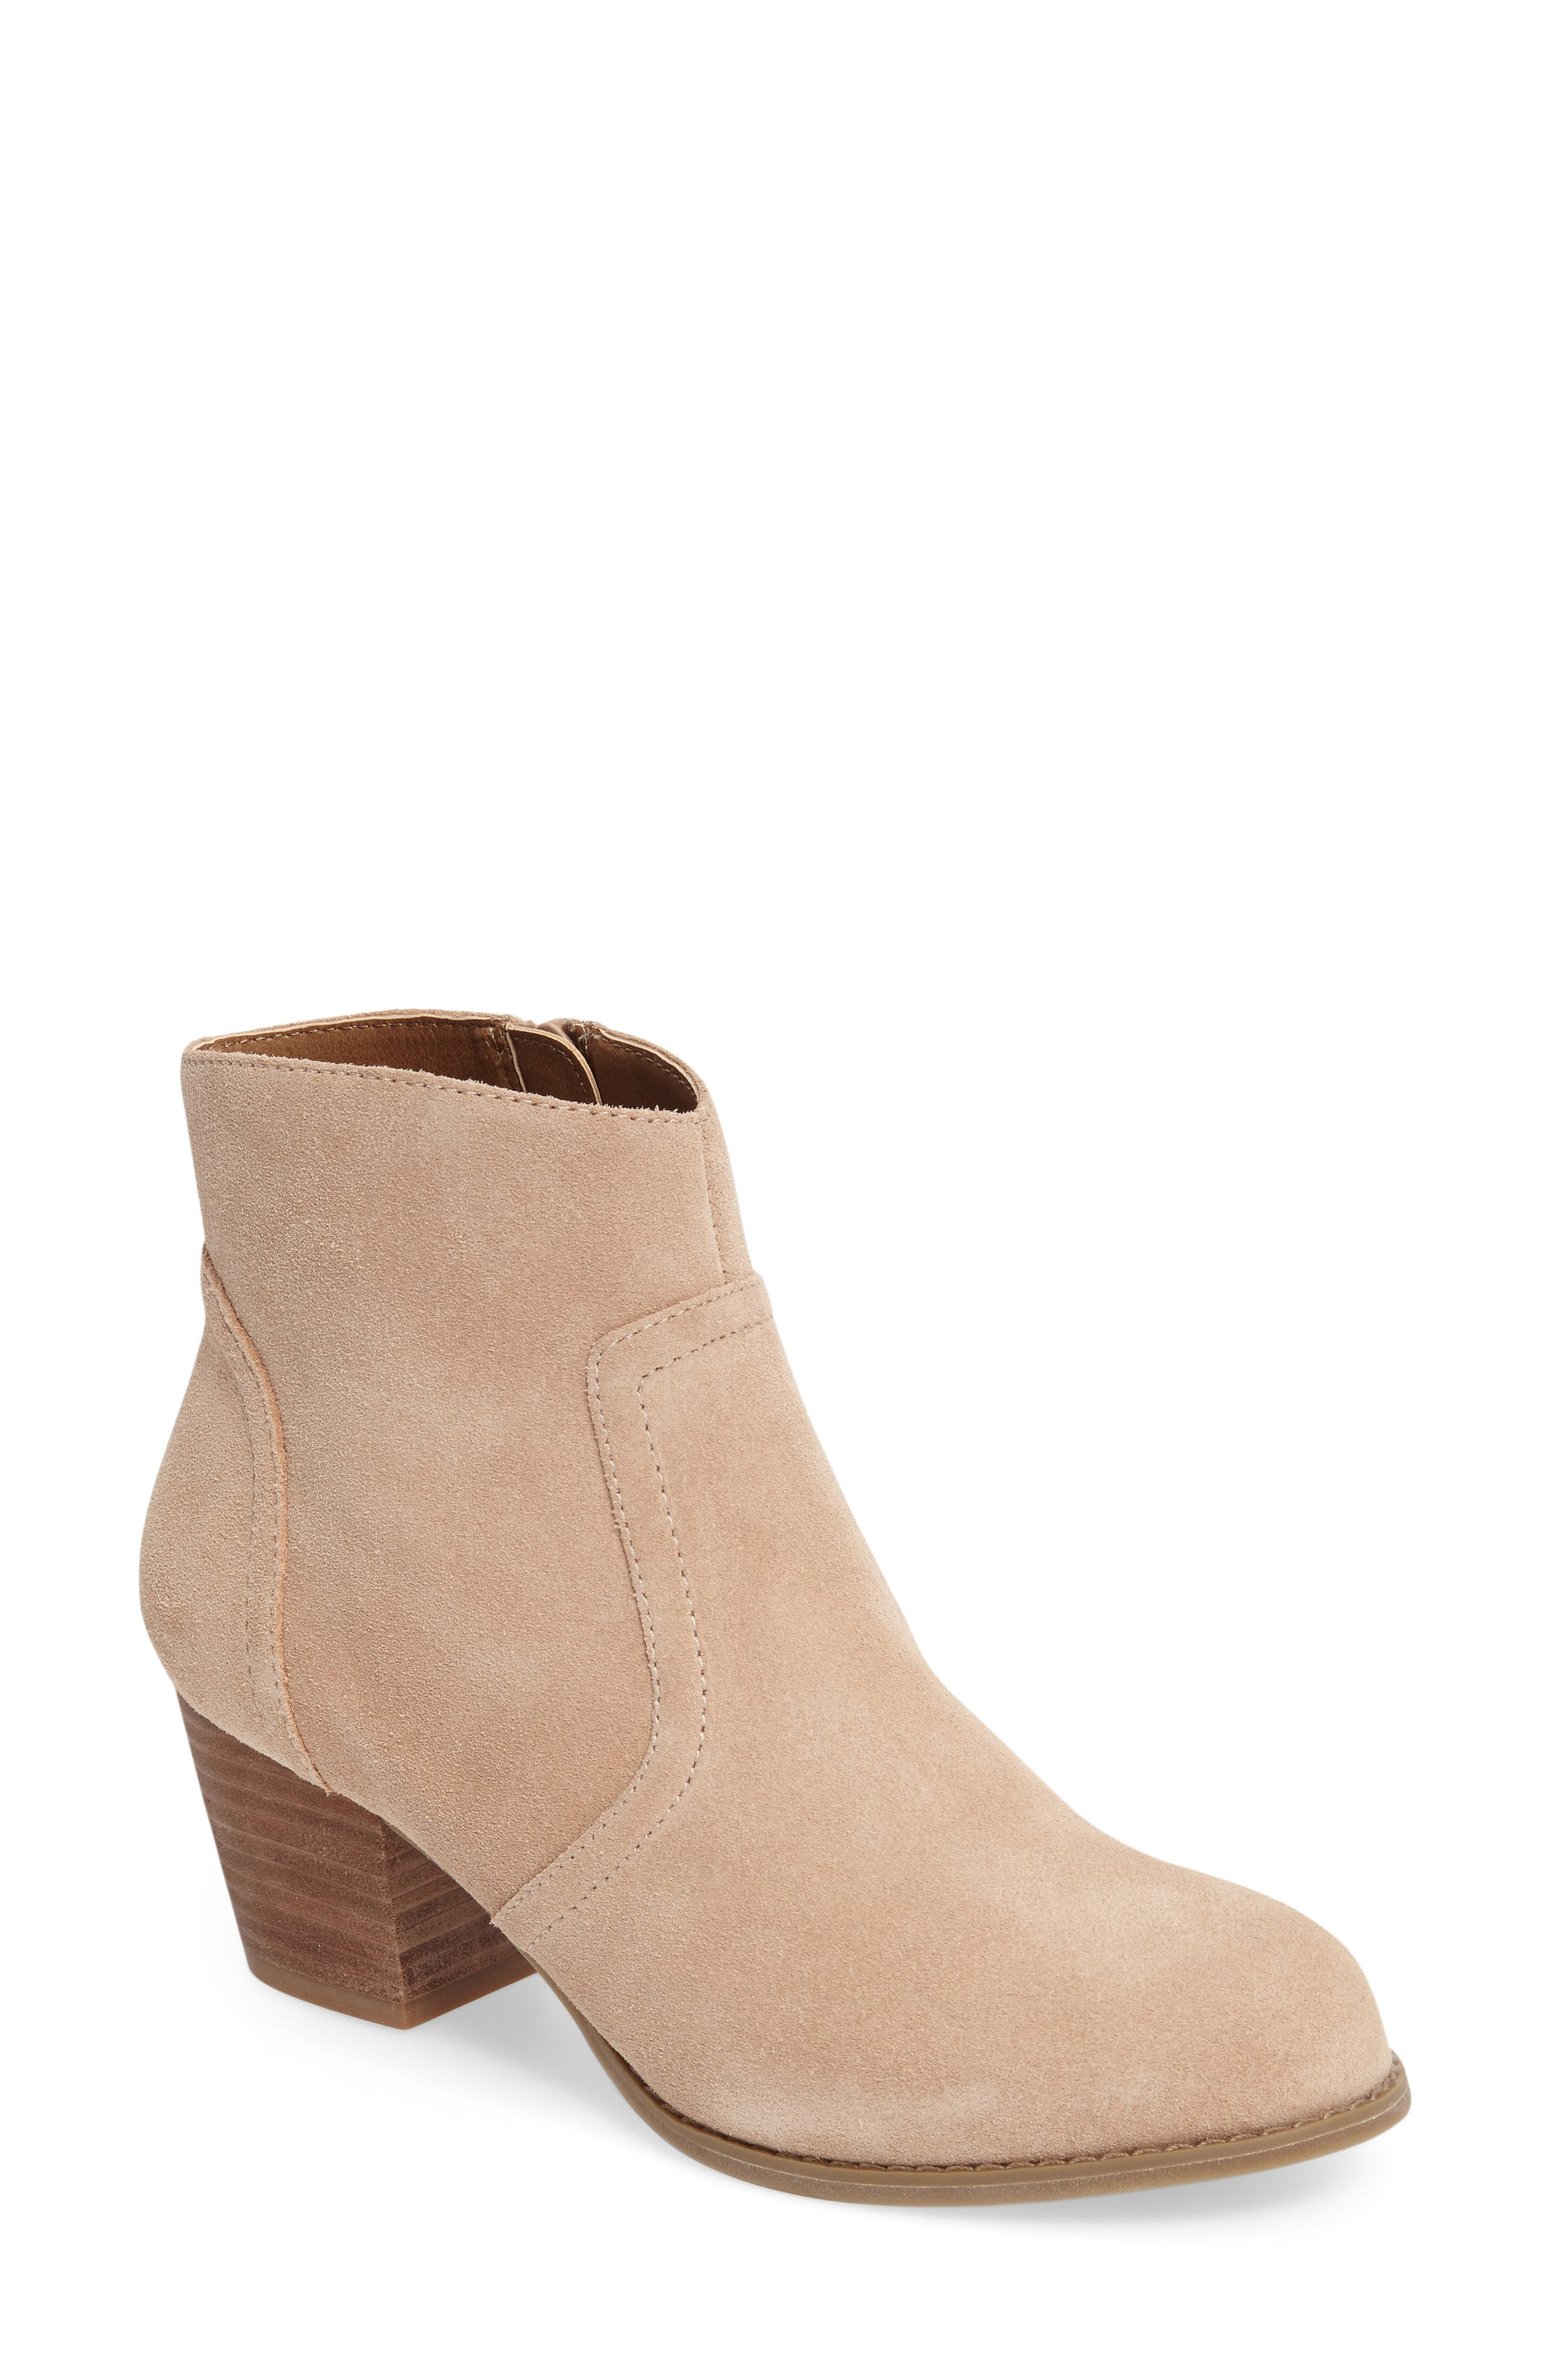 Romy Bootie,                             Main thumbnail 1, color,                             Caramel